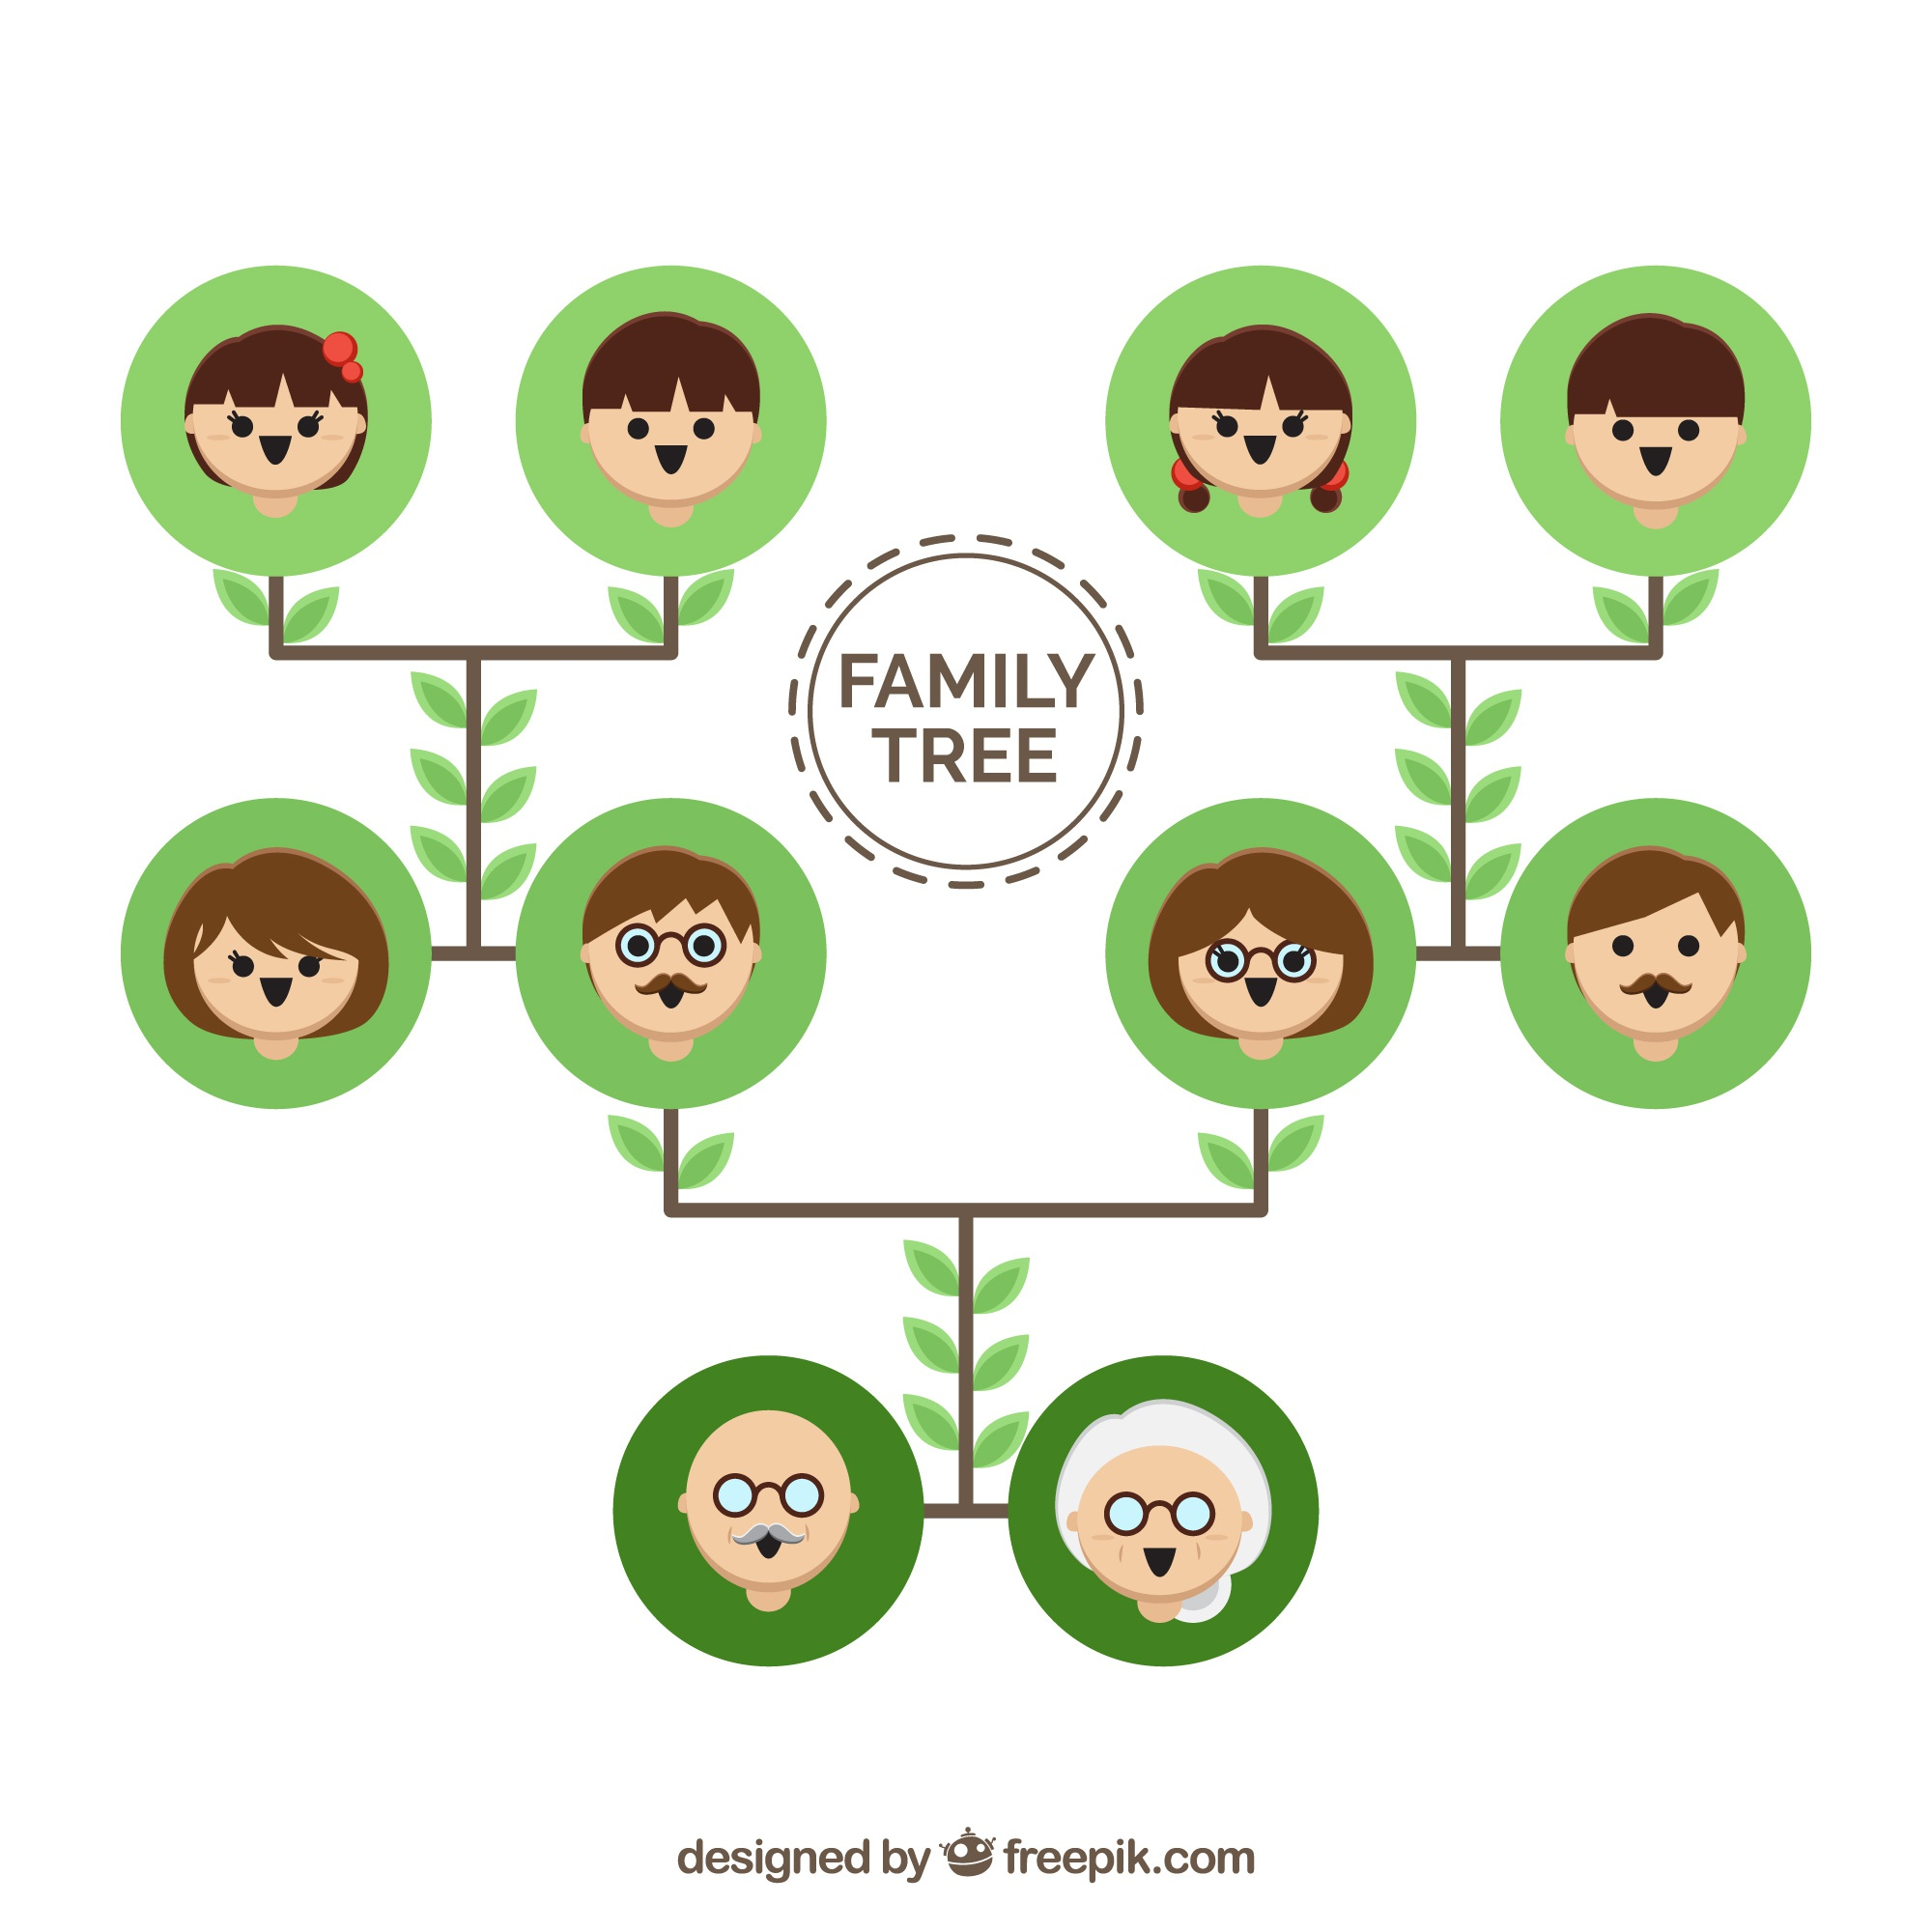 Flat family tree with green circles